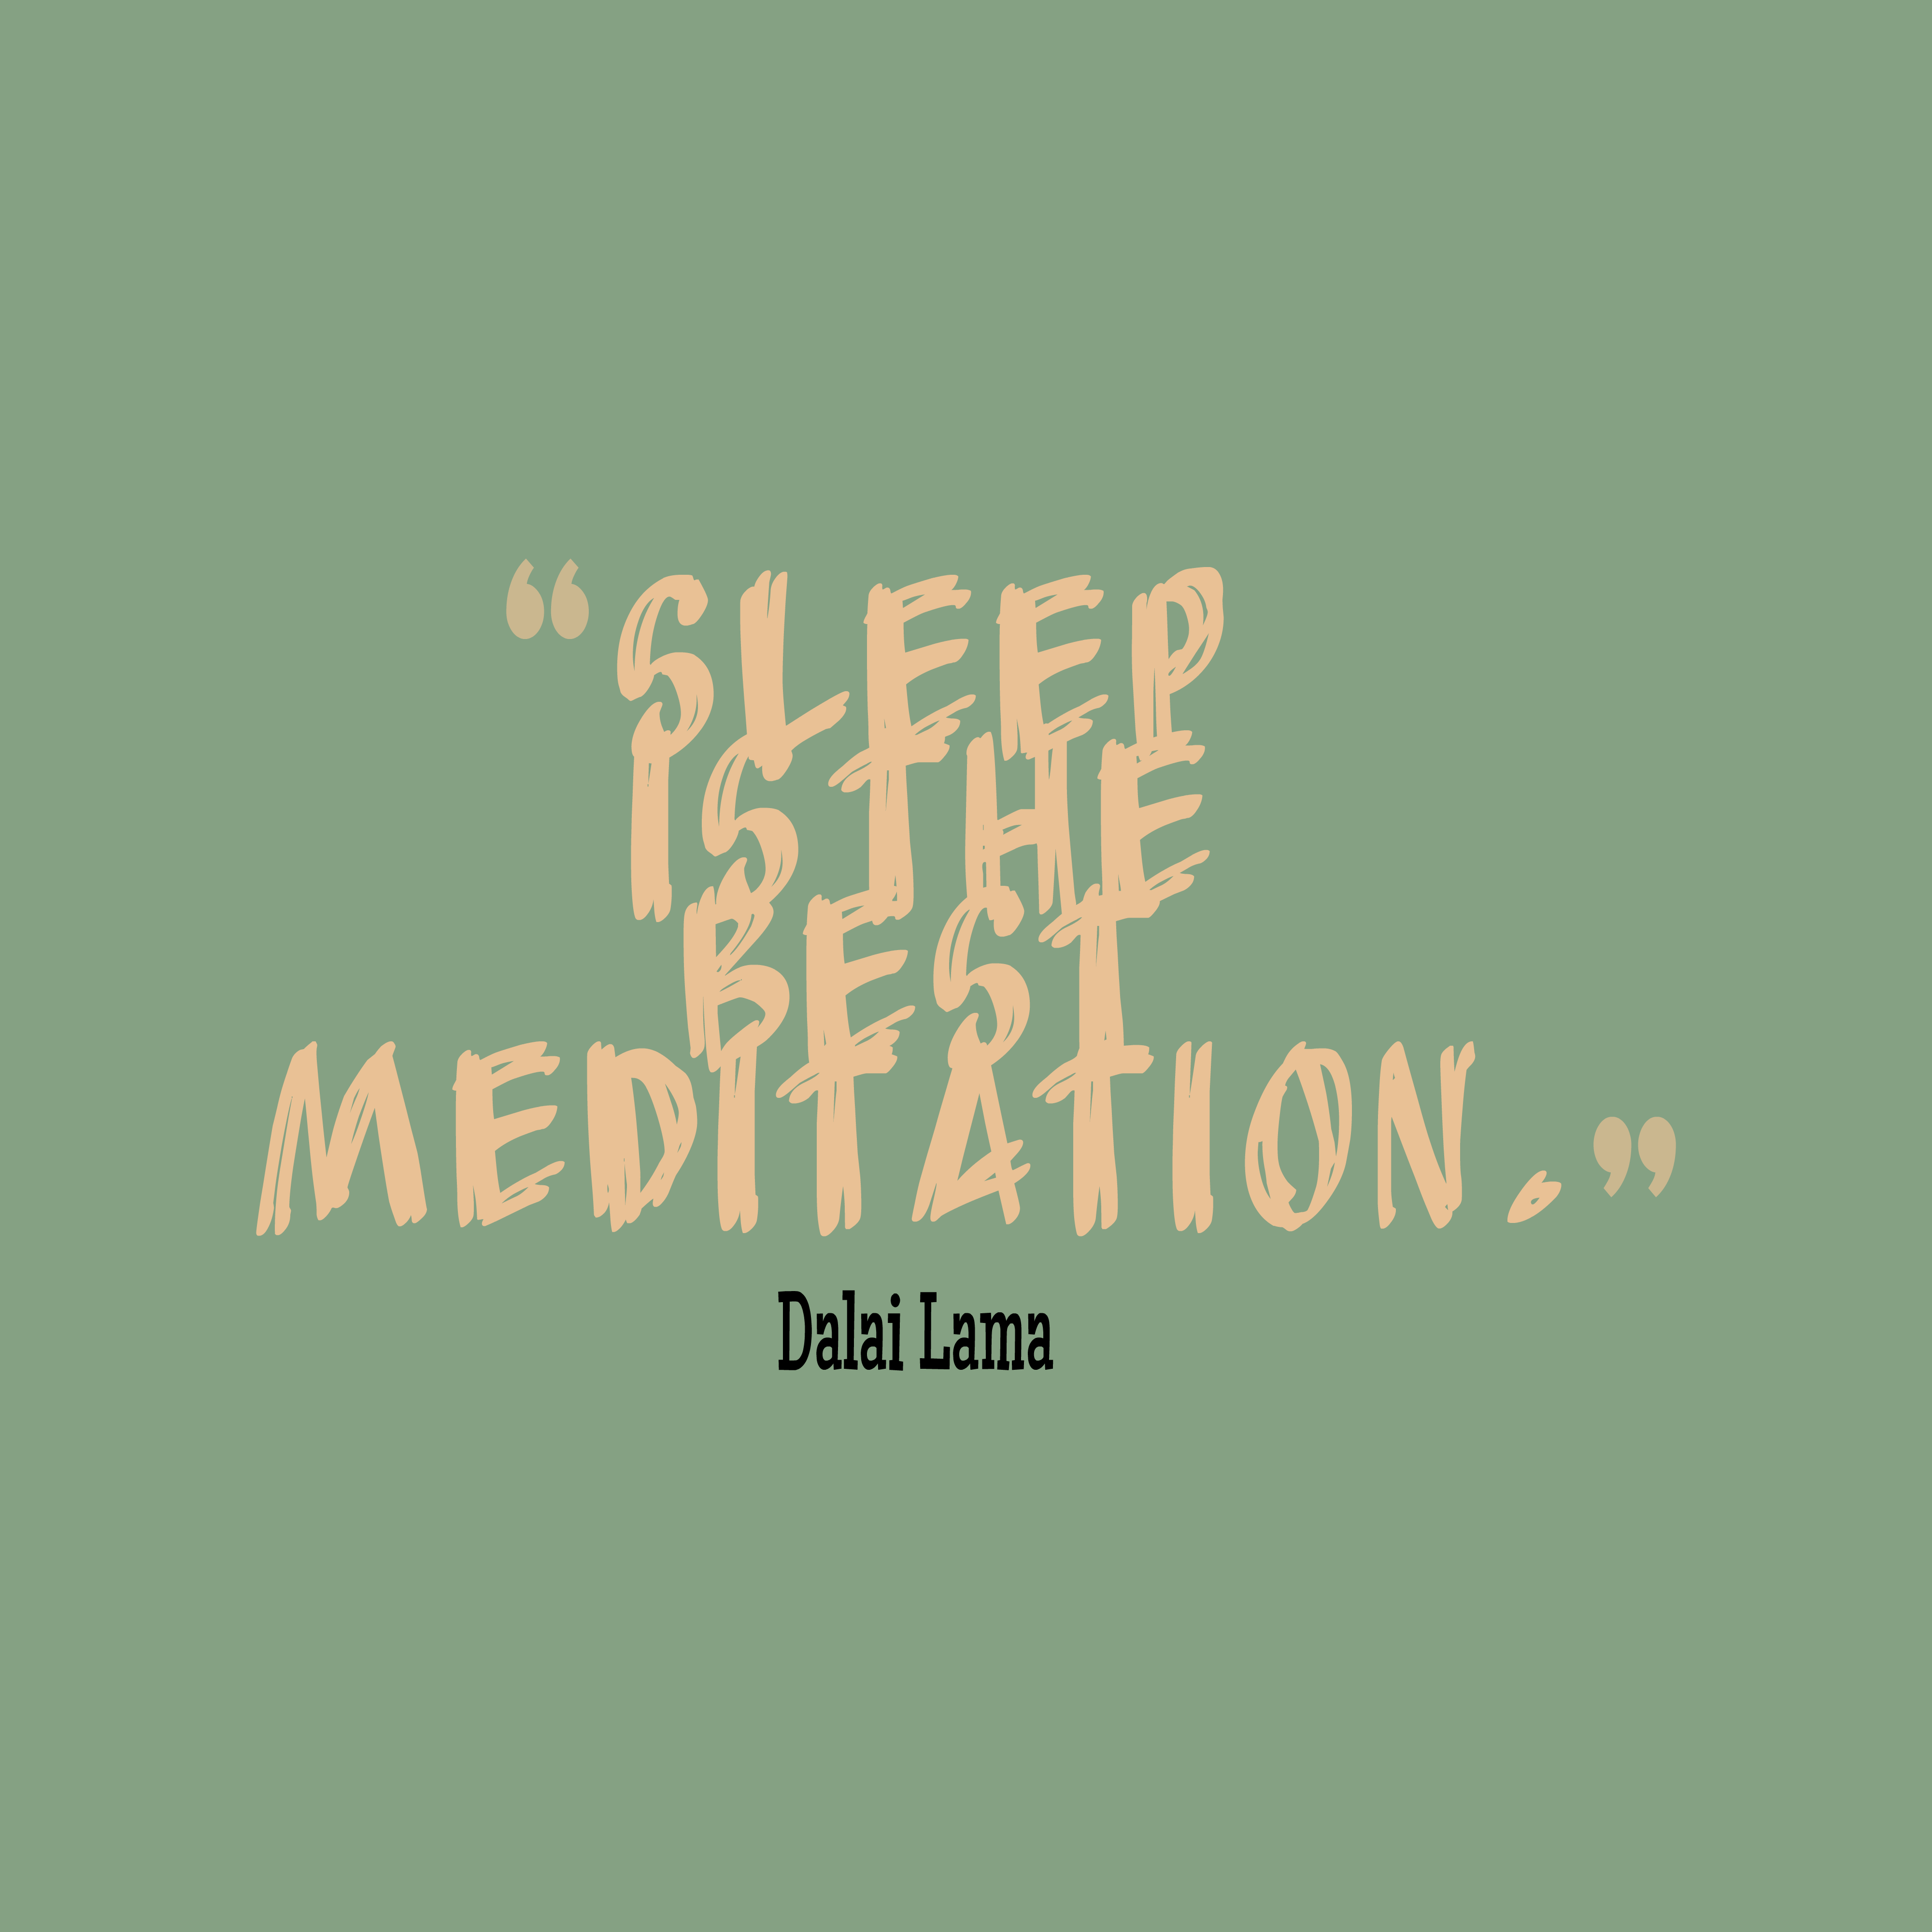 Quotes About Sleep | Dalai Lama Quote About Sleep